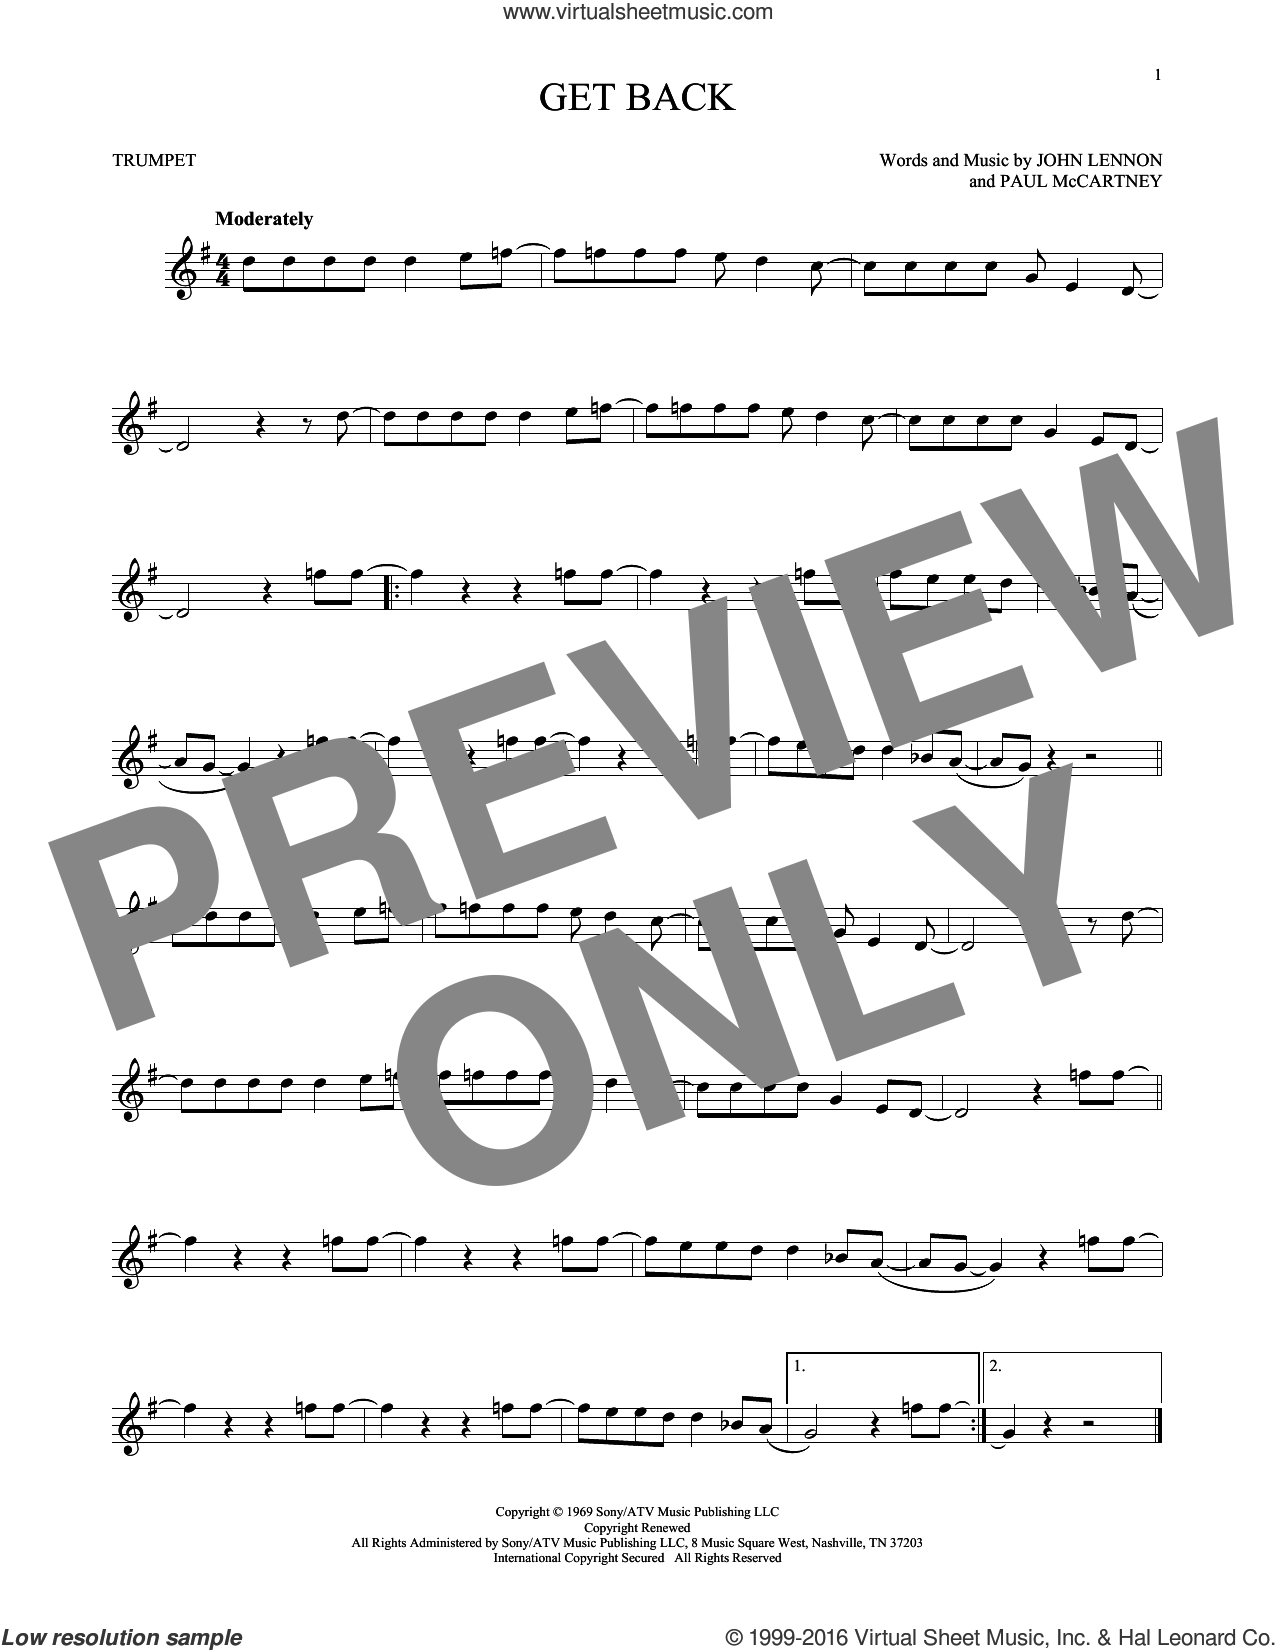 Get Back sheet music for trumpet solo by The Beatles, John Lennon and Paul McCartney, intermediate skill level